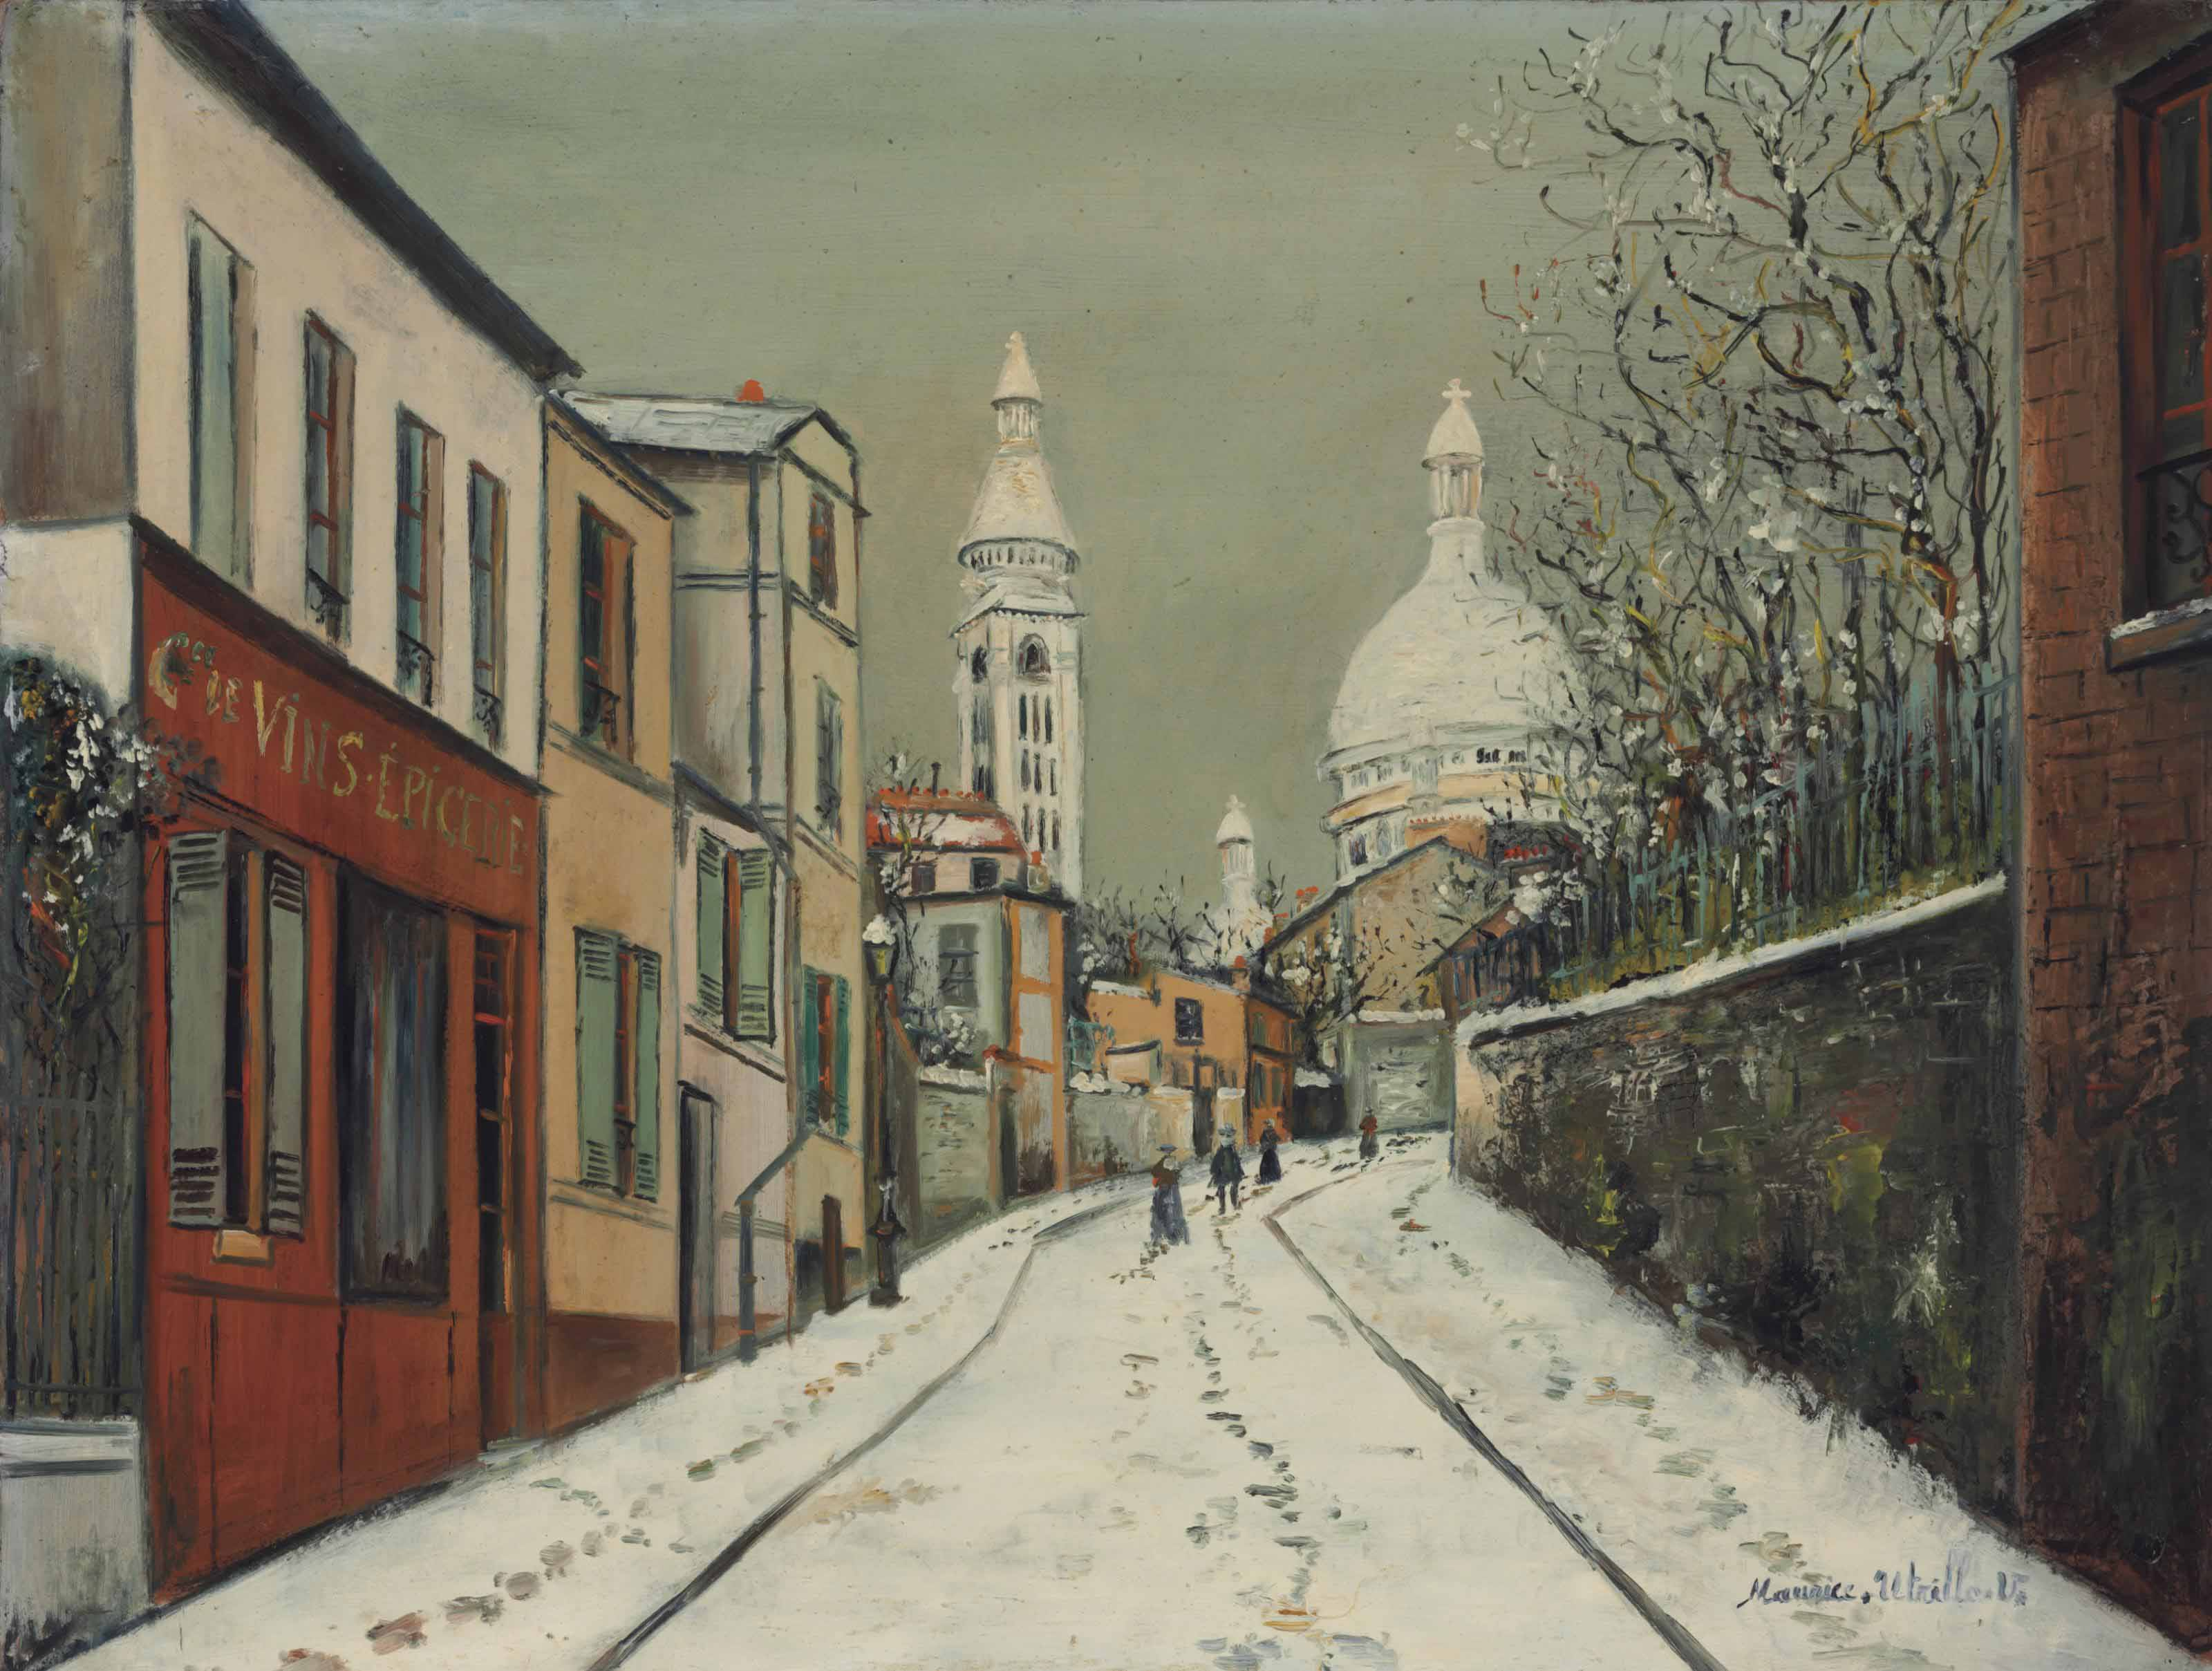 https://www.christies.com/img/LotImages/2013/NYR/2013_NYR_02784_0239_000(maurice_utrillo_rue_de_labreuvoir_sous_la_neige).jpg